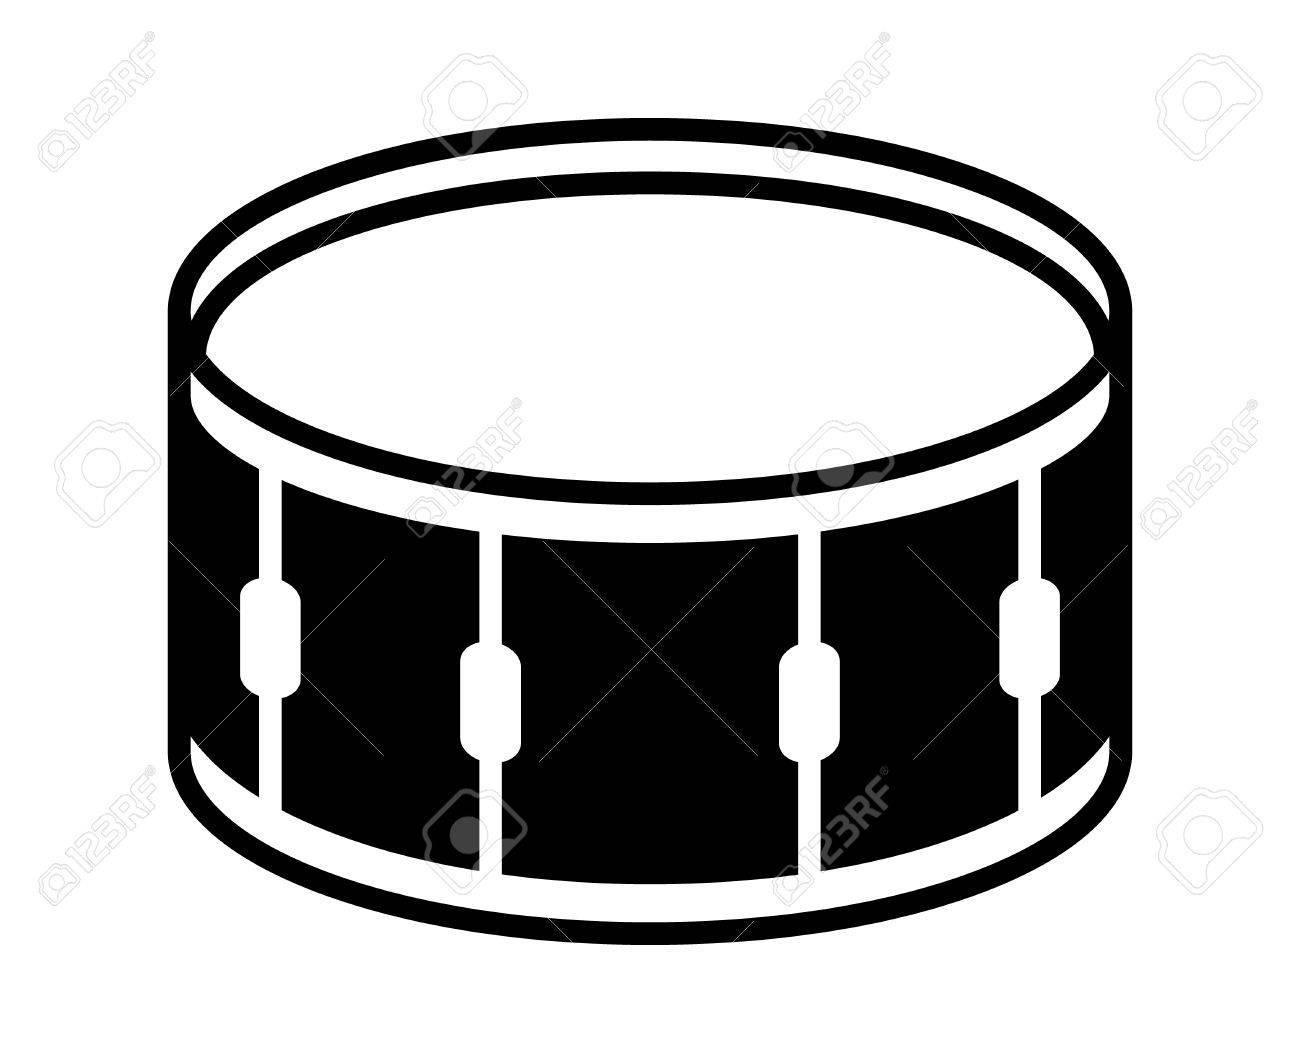 Snare drum clipart black and white clip Snare drum clipart black and white 3 » Clipart Portal clip